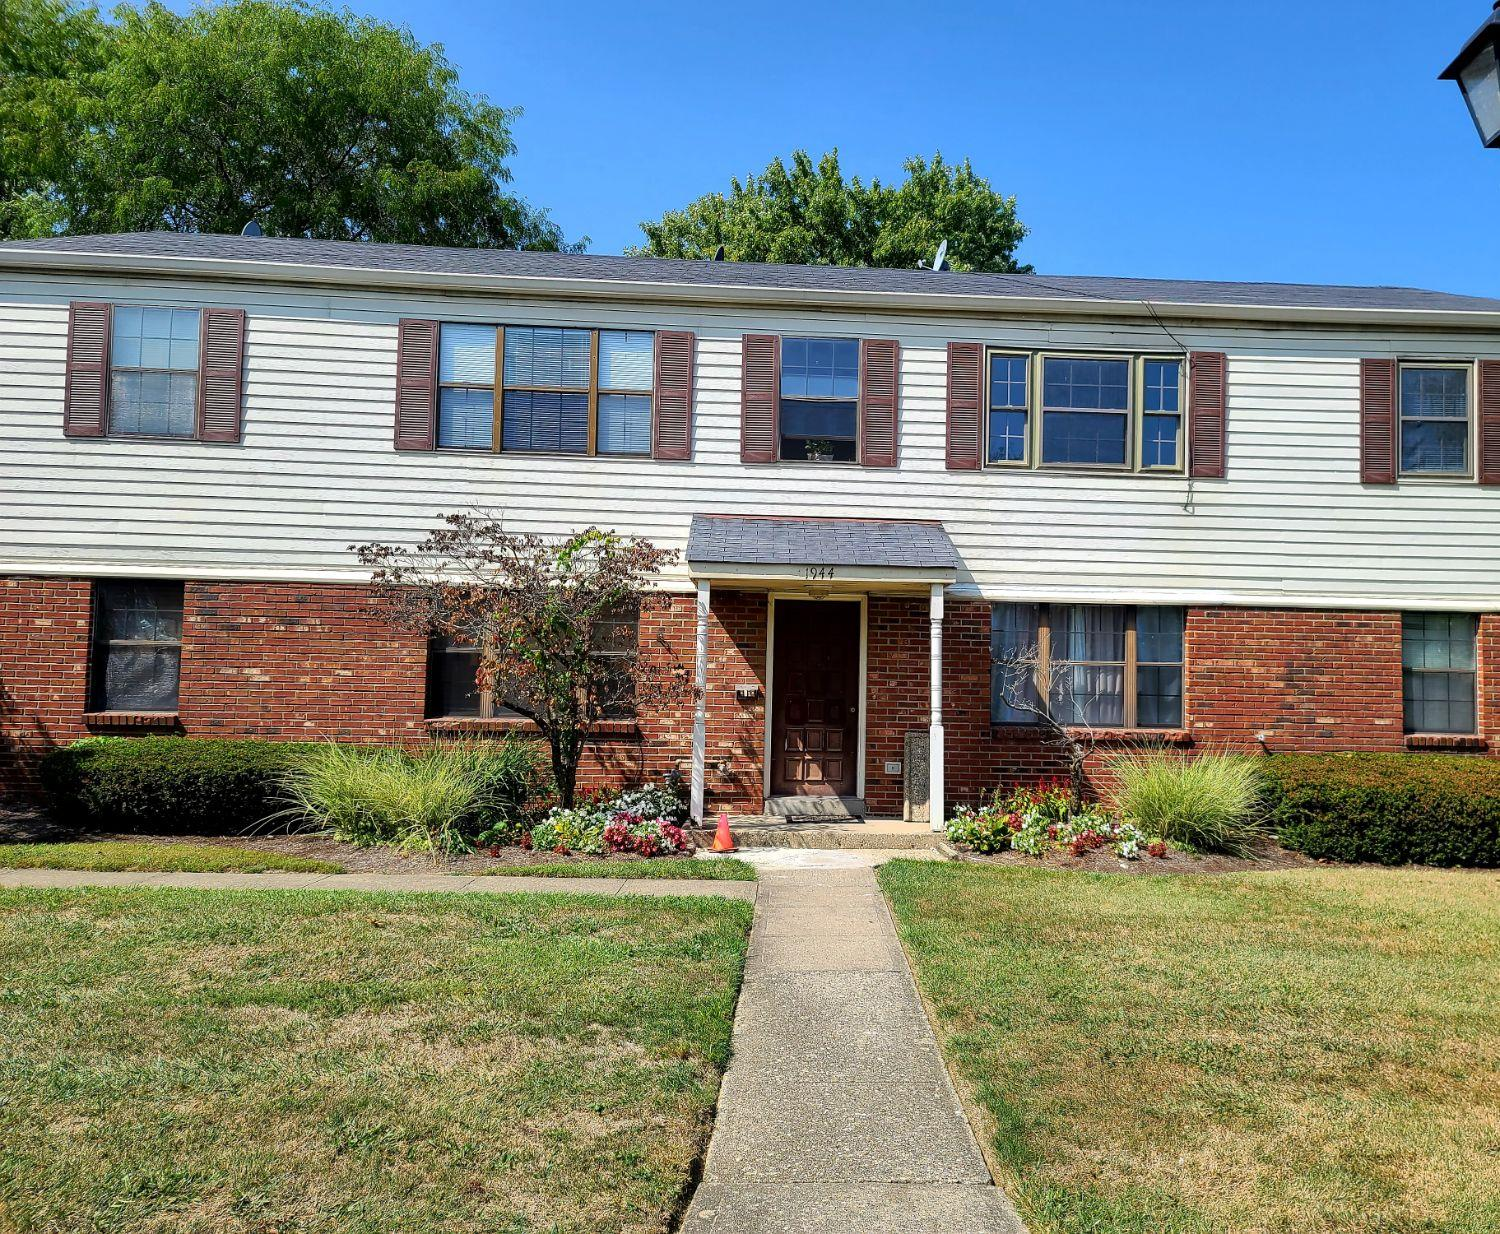 1944 Chaucer Dr #D Sycamore Twp., OH